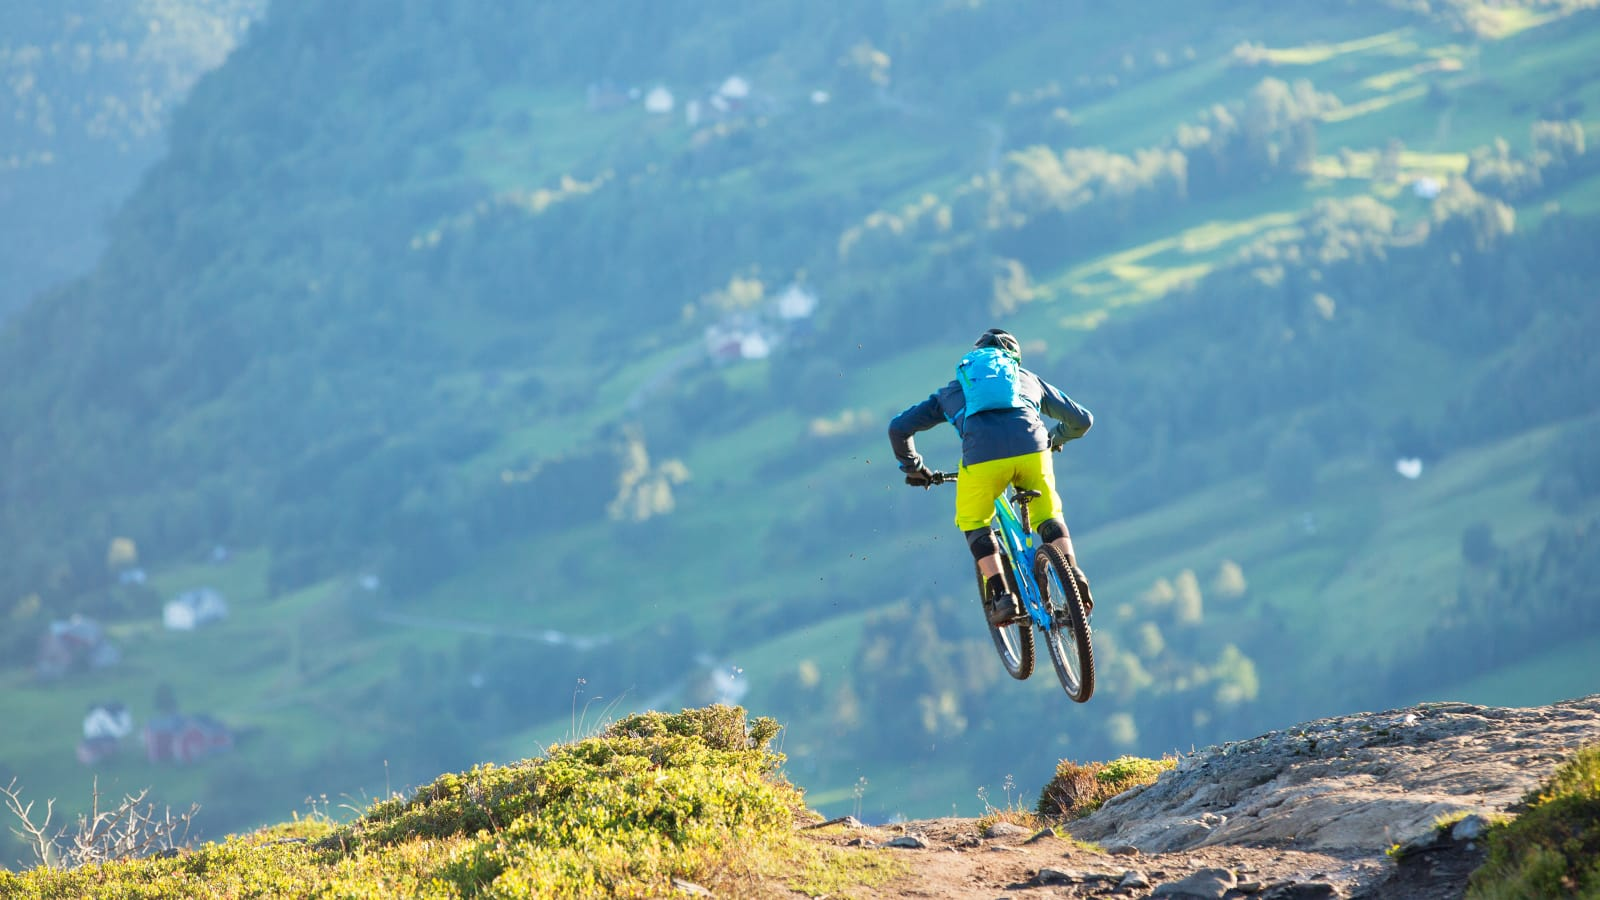 6ee434c6494 ... thrilling, exhausting and tons of fun - just like freeskiing. The  Norrøna fjørå mountain biking concept was born. And as the sport of  mountainbiking ...